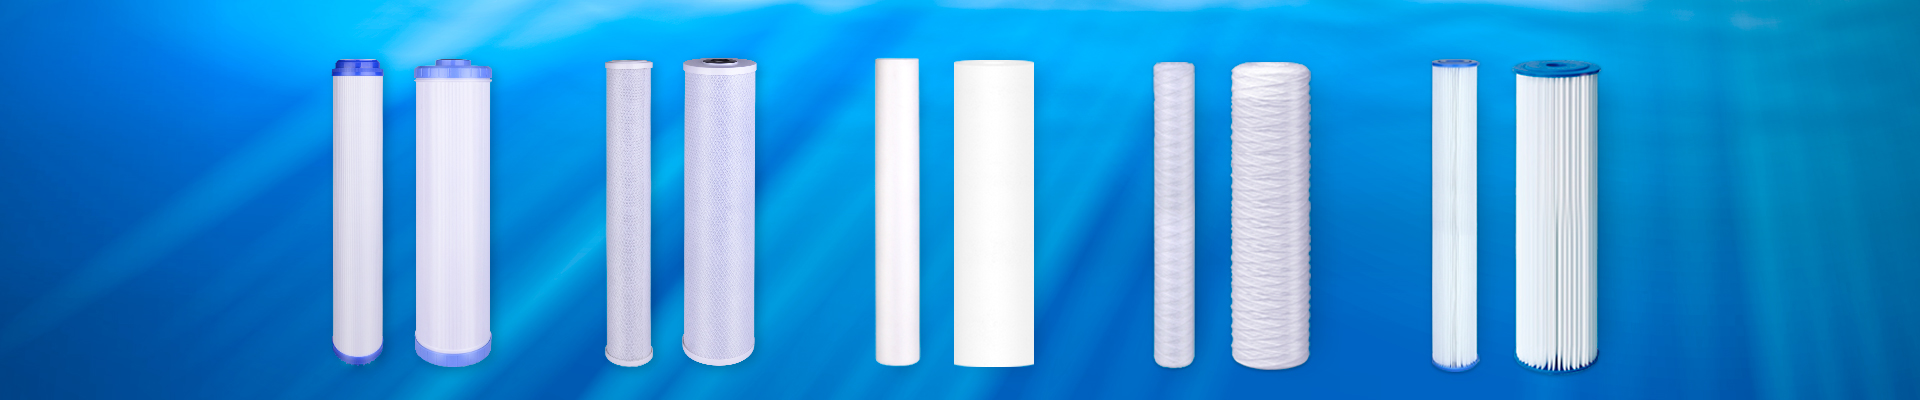 20 inch Water Filter Cartridges